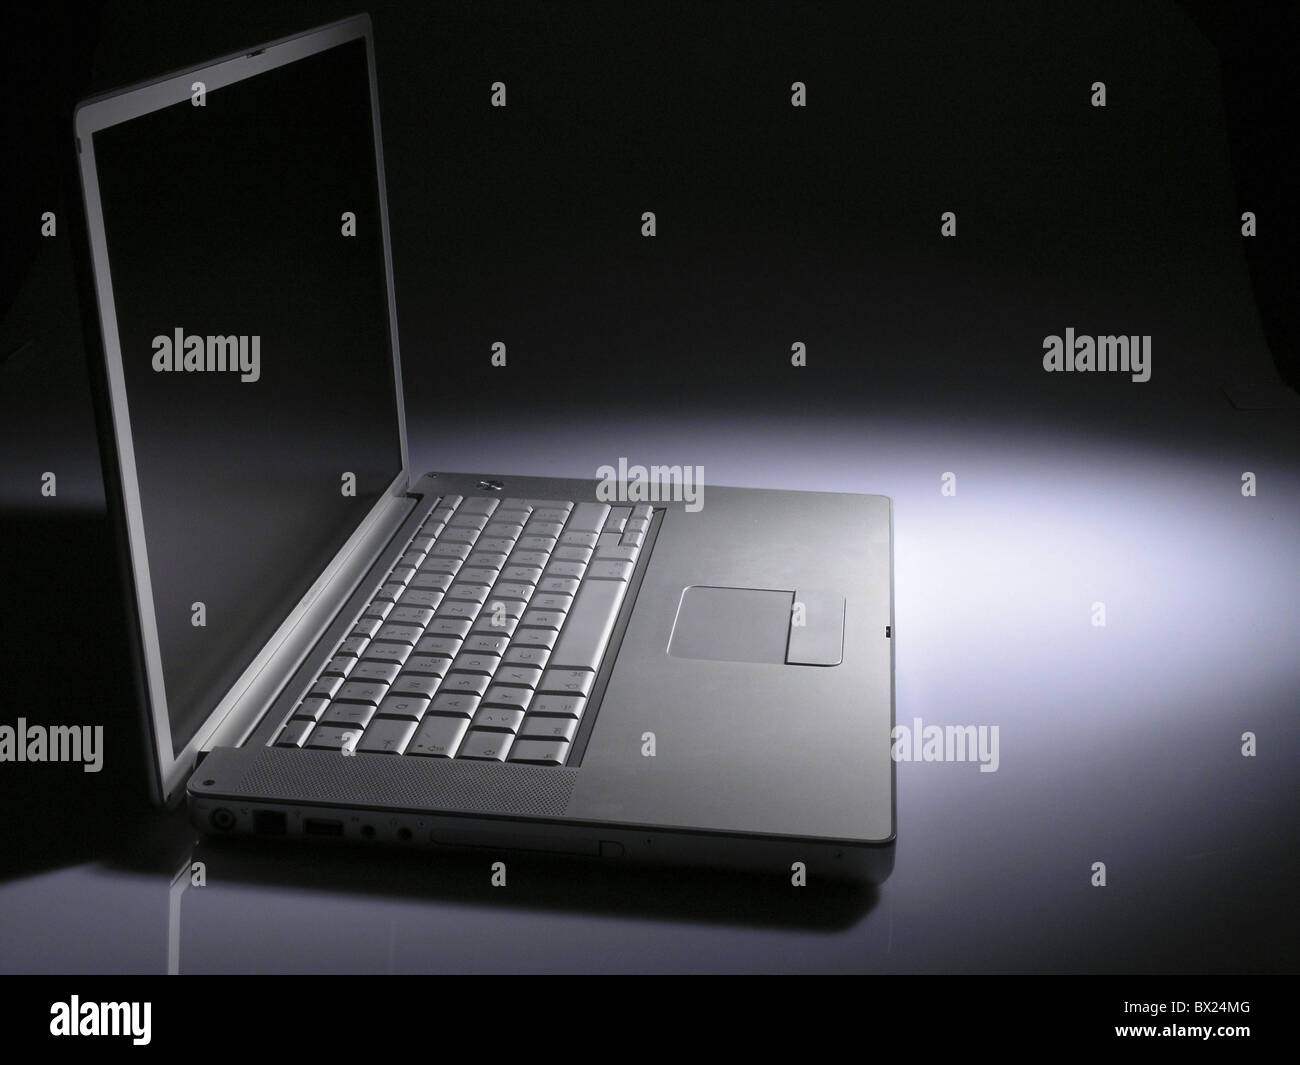 appliance computer device laptop notebook studio without persons - Stock Image